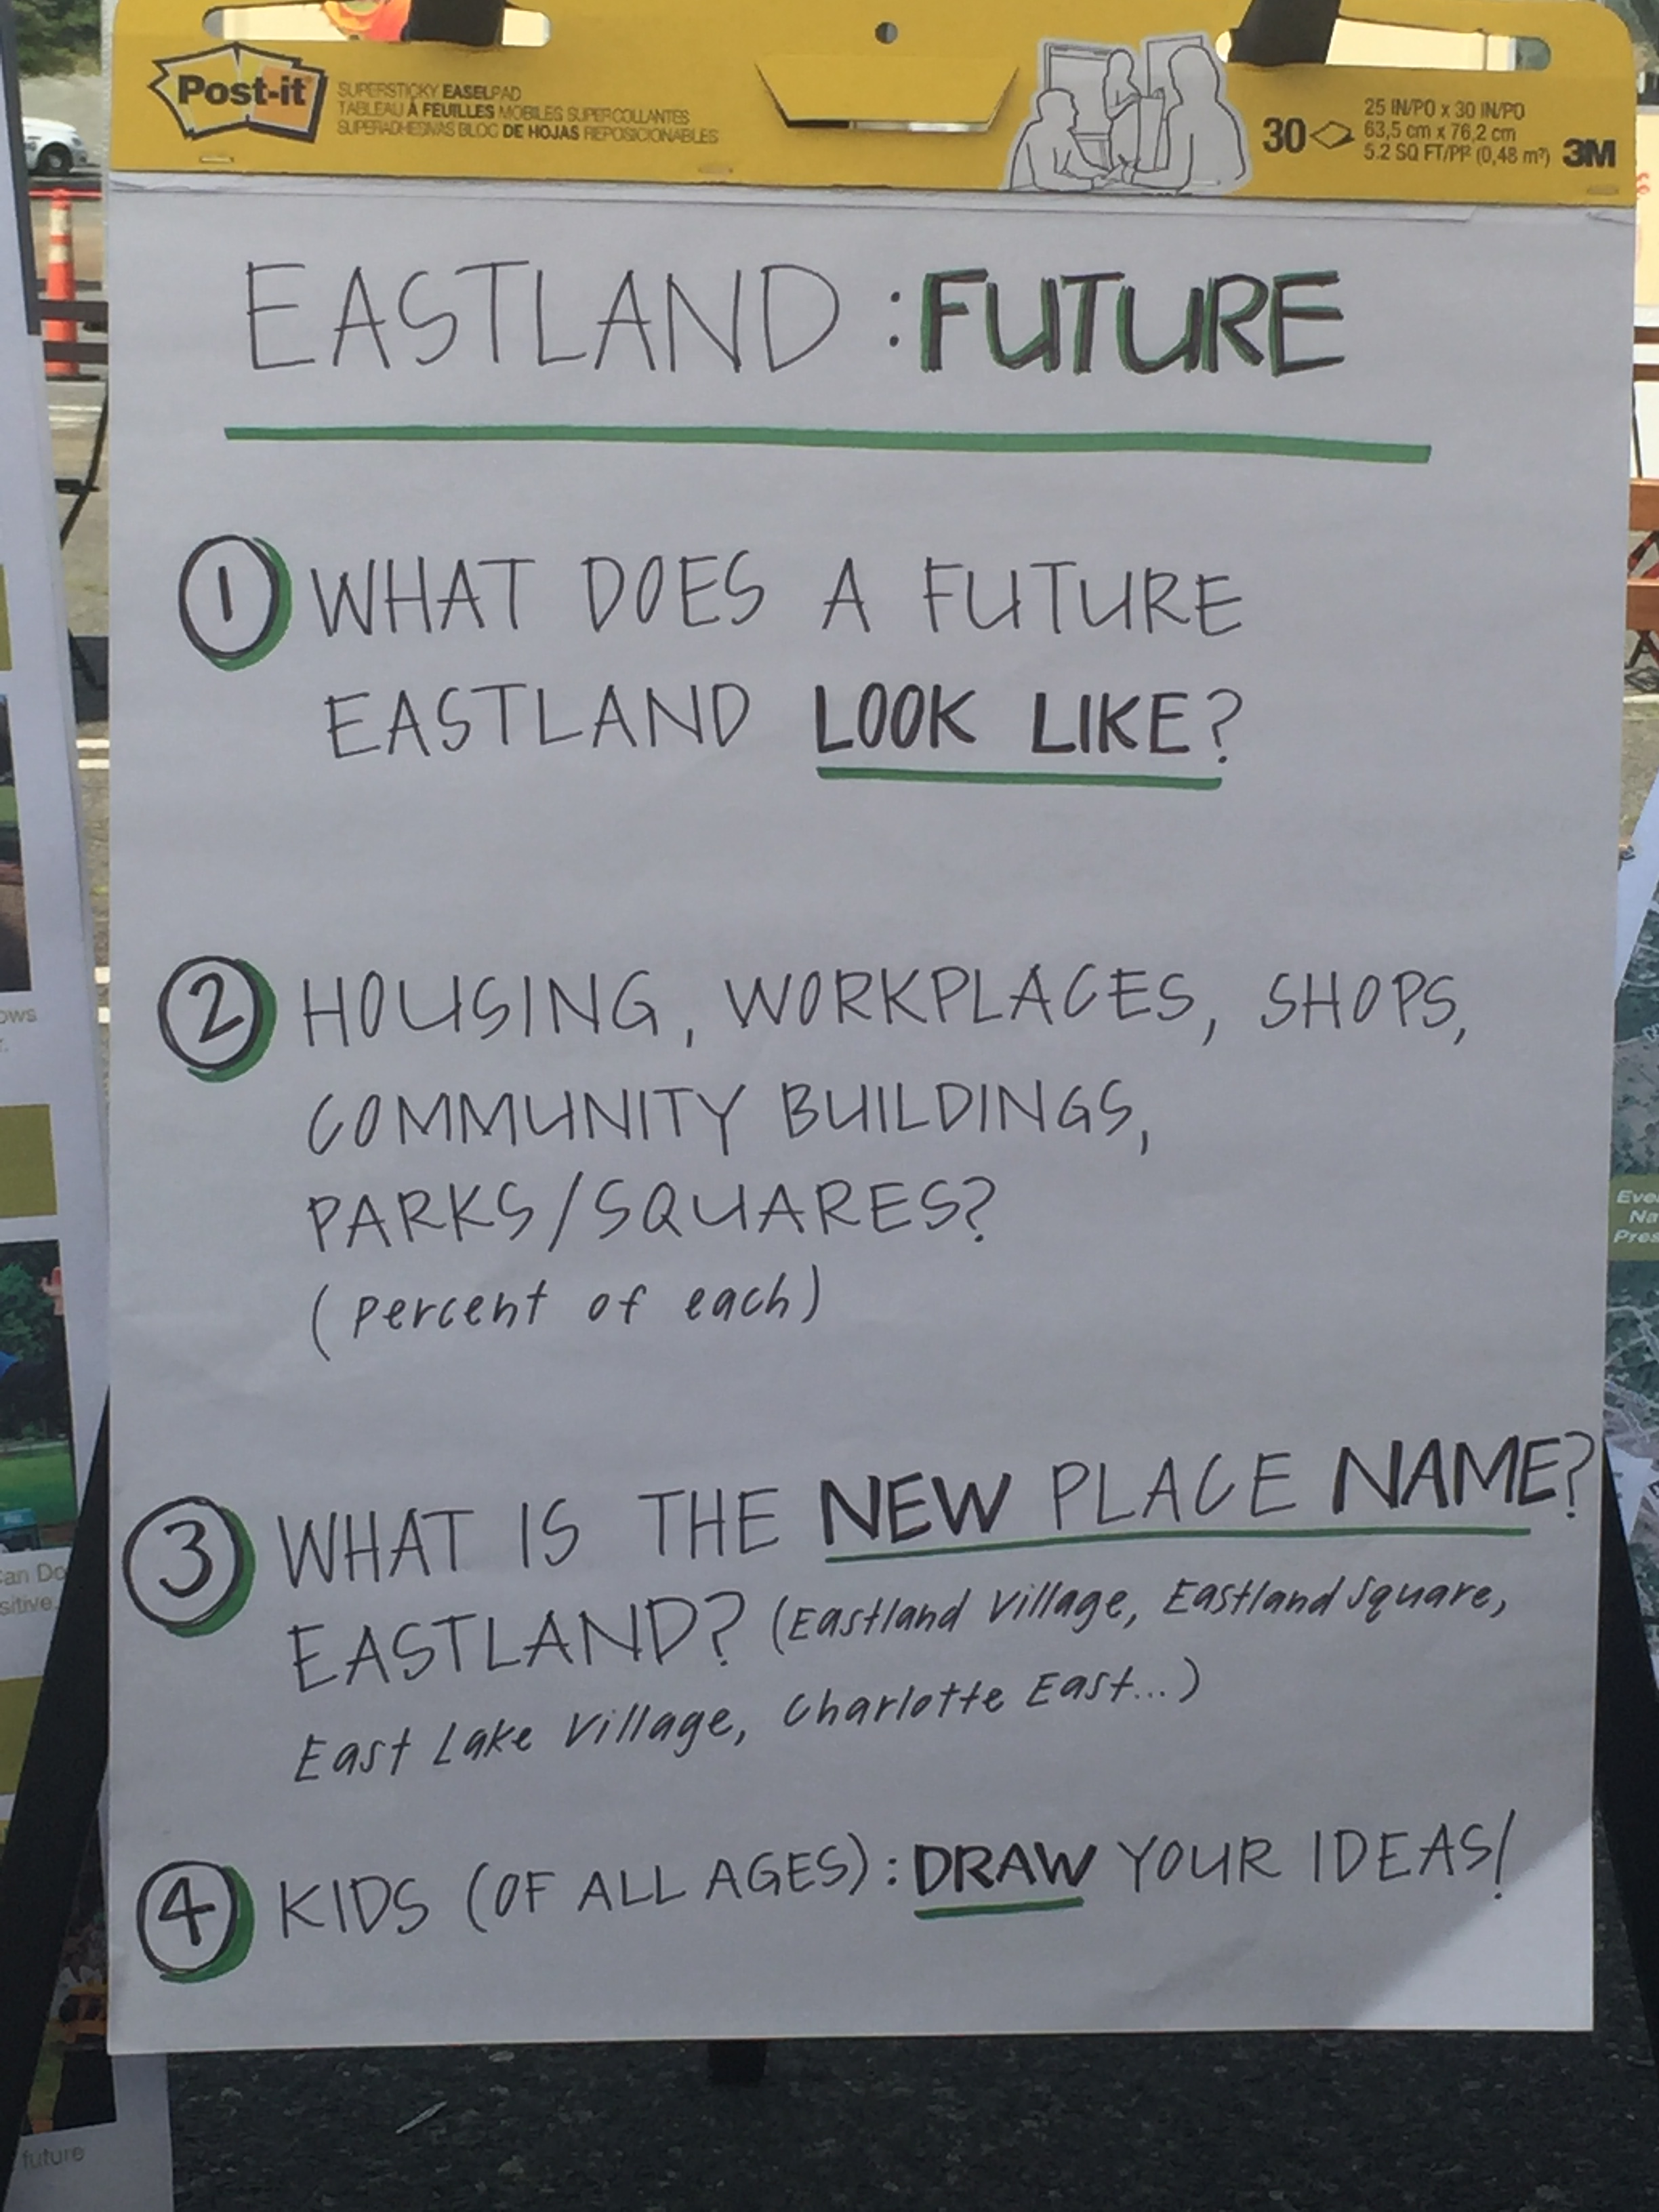 Eastland Future - Questions